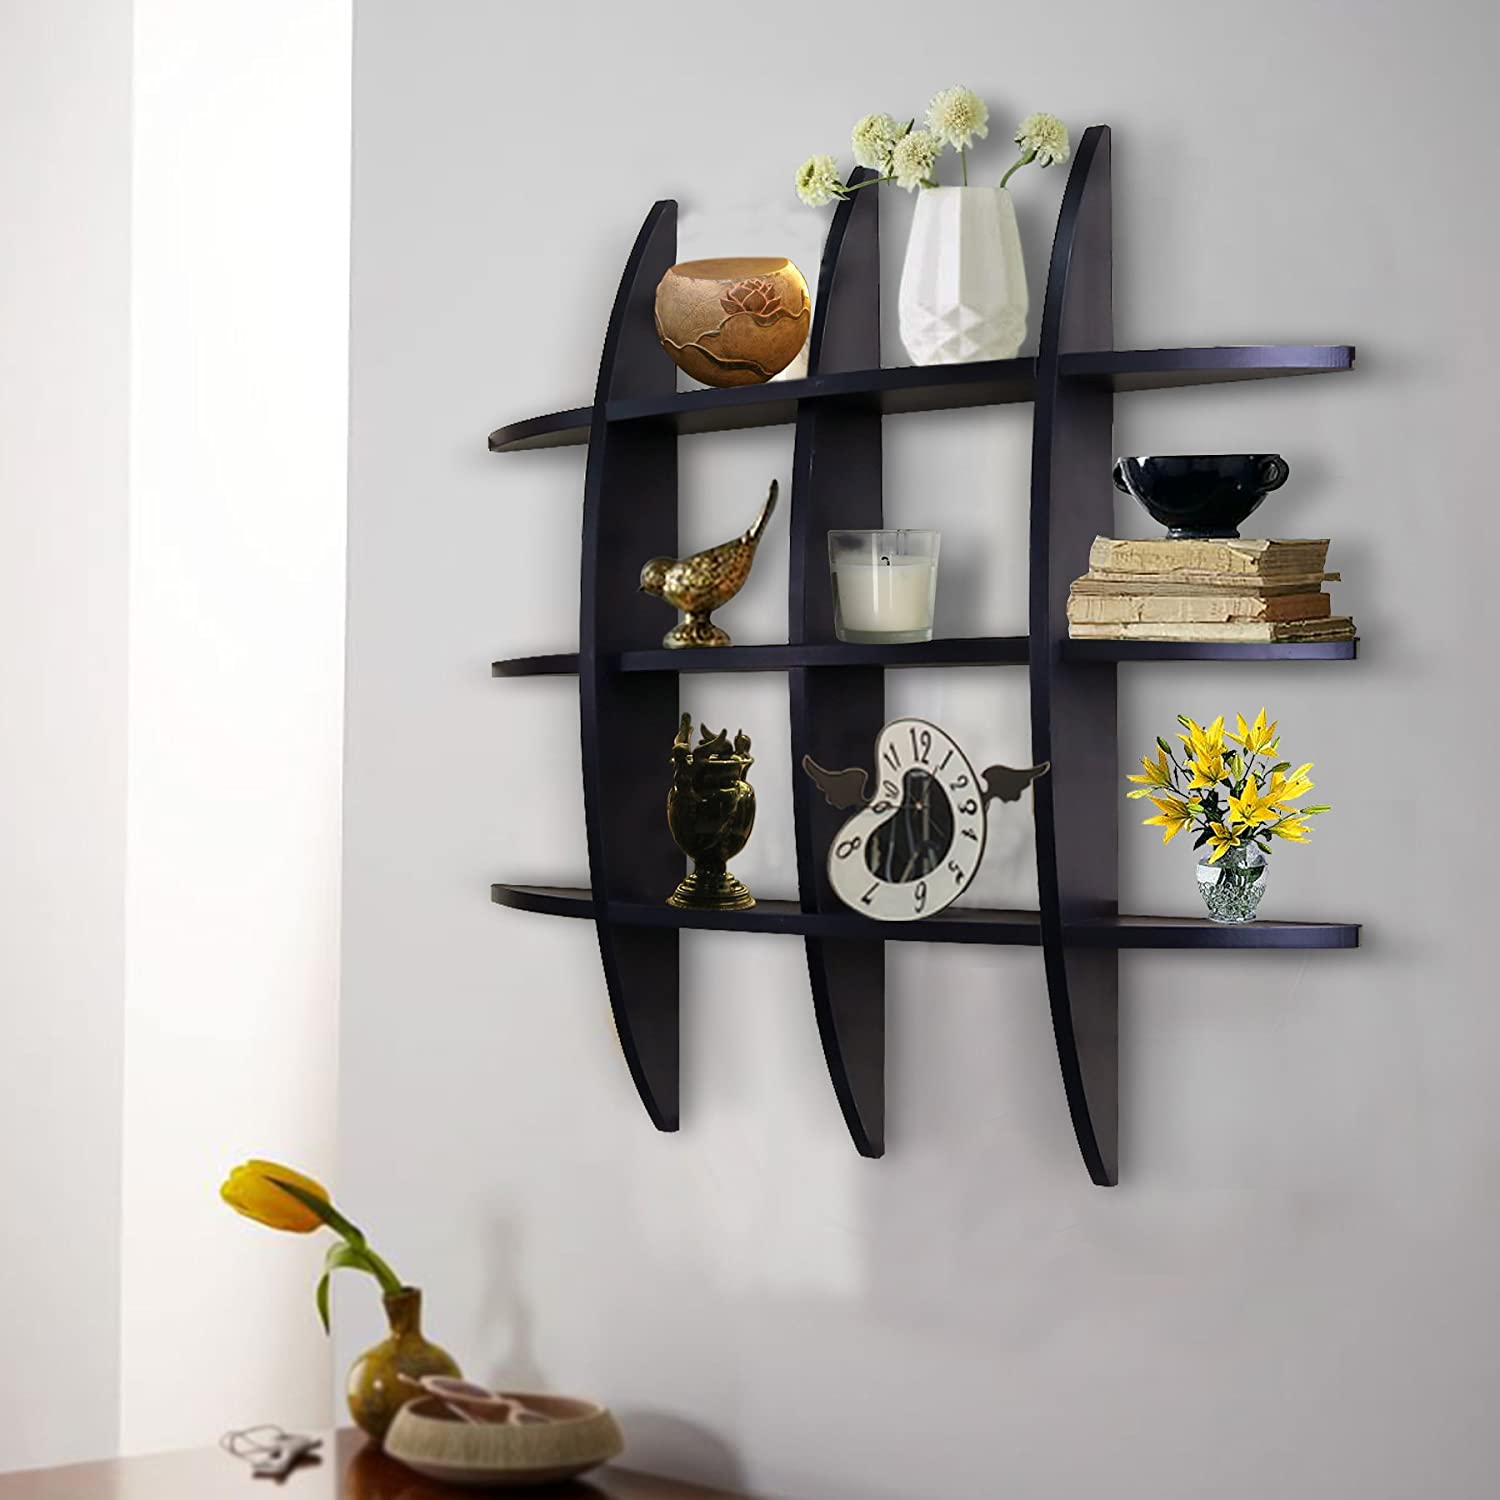 Floating shelves amazon shelving solution cross display wall shelf black amipublicfo Image collections